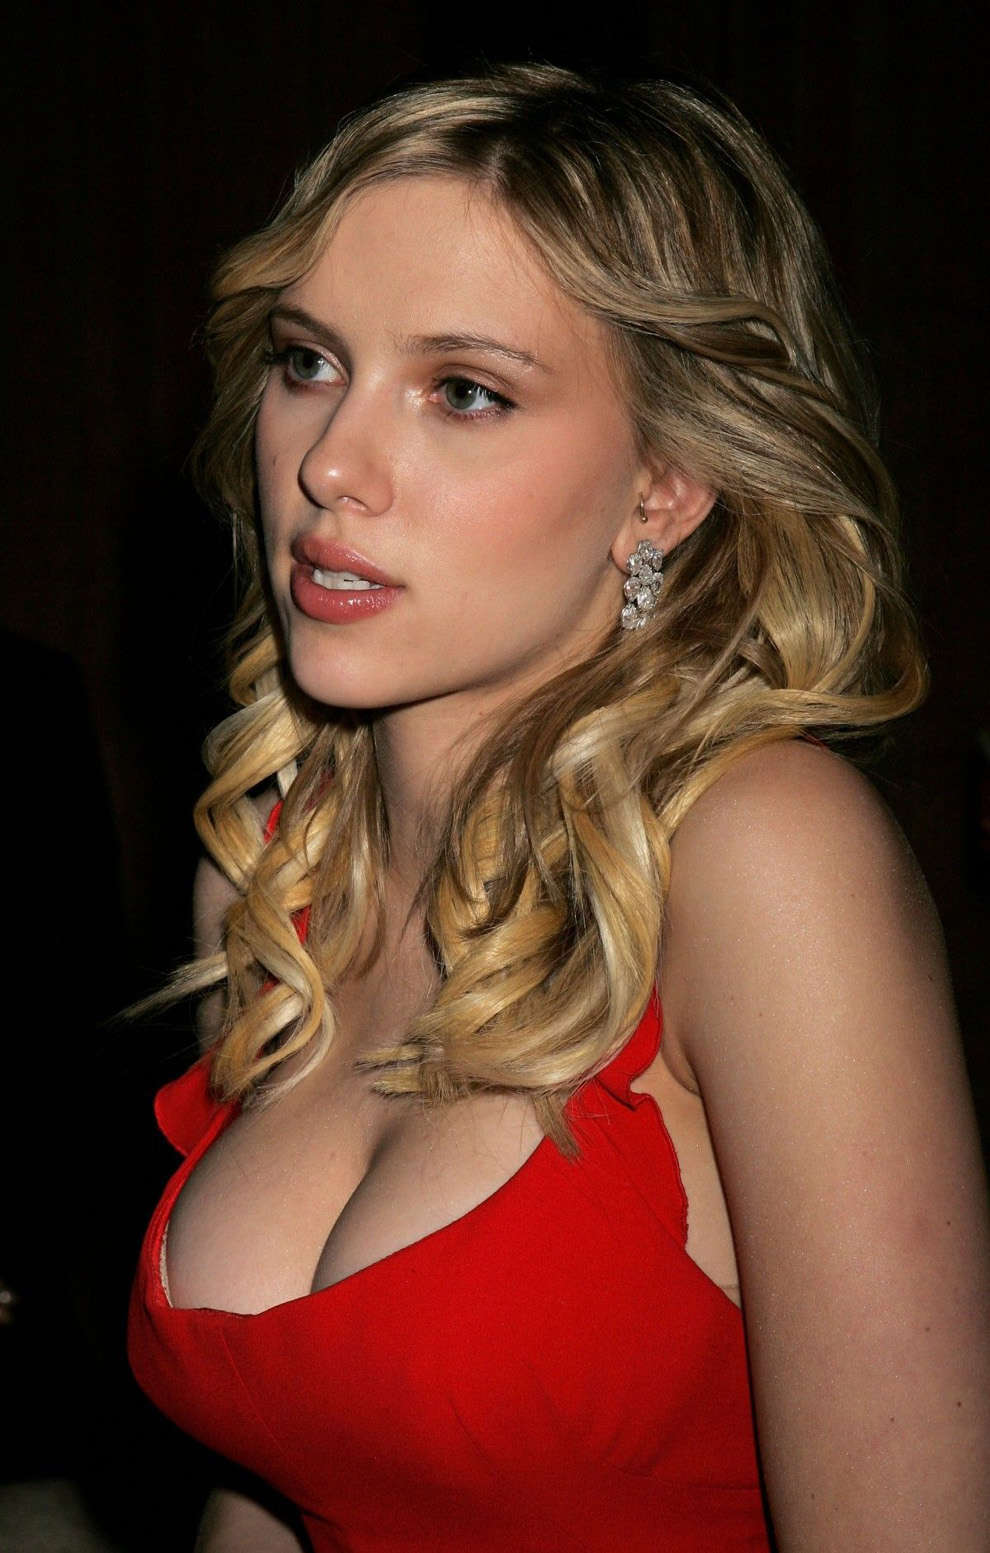 all wallpapers4u scarlett johansson hot